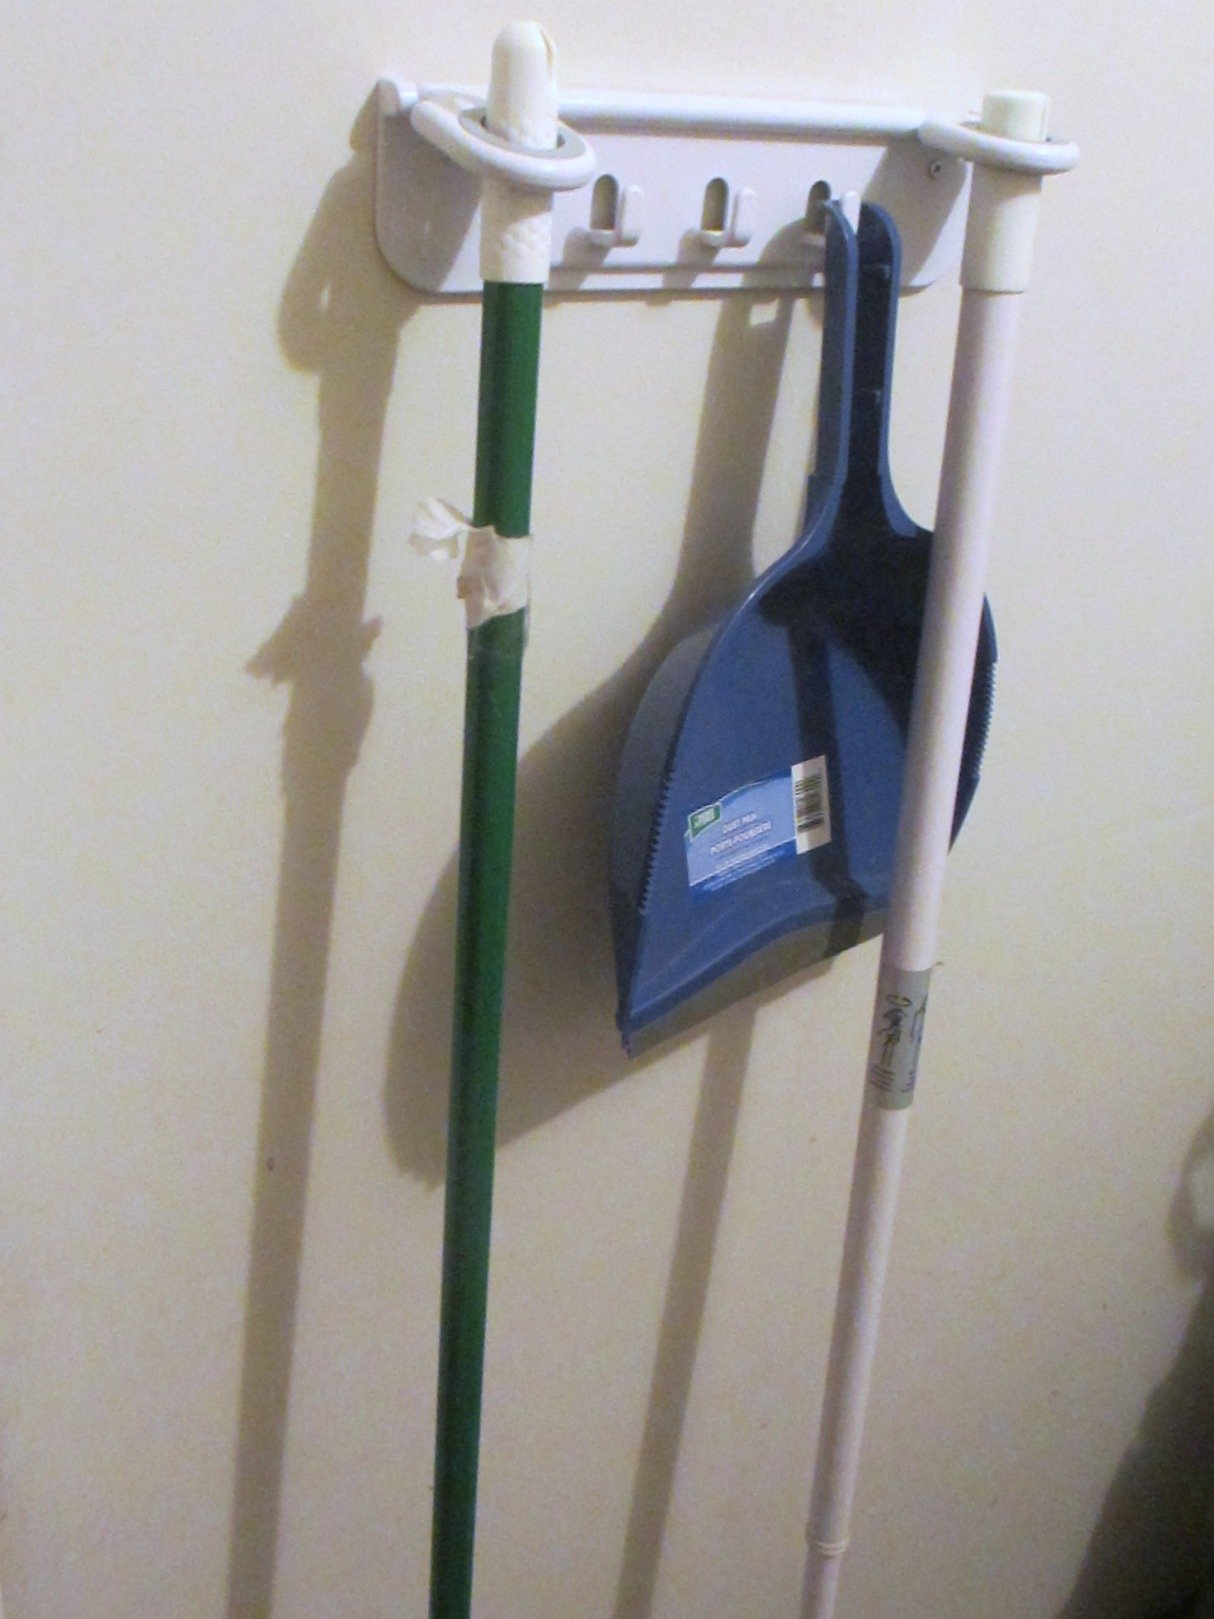 Charmant Mop And Broom Holder Organizer Mop And Broom Holder Organizer